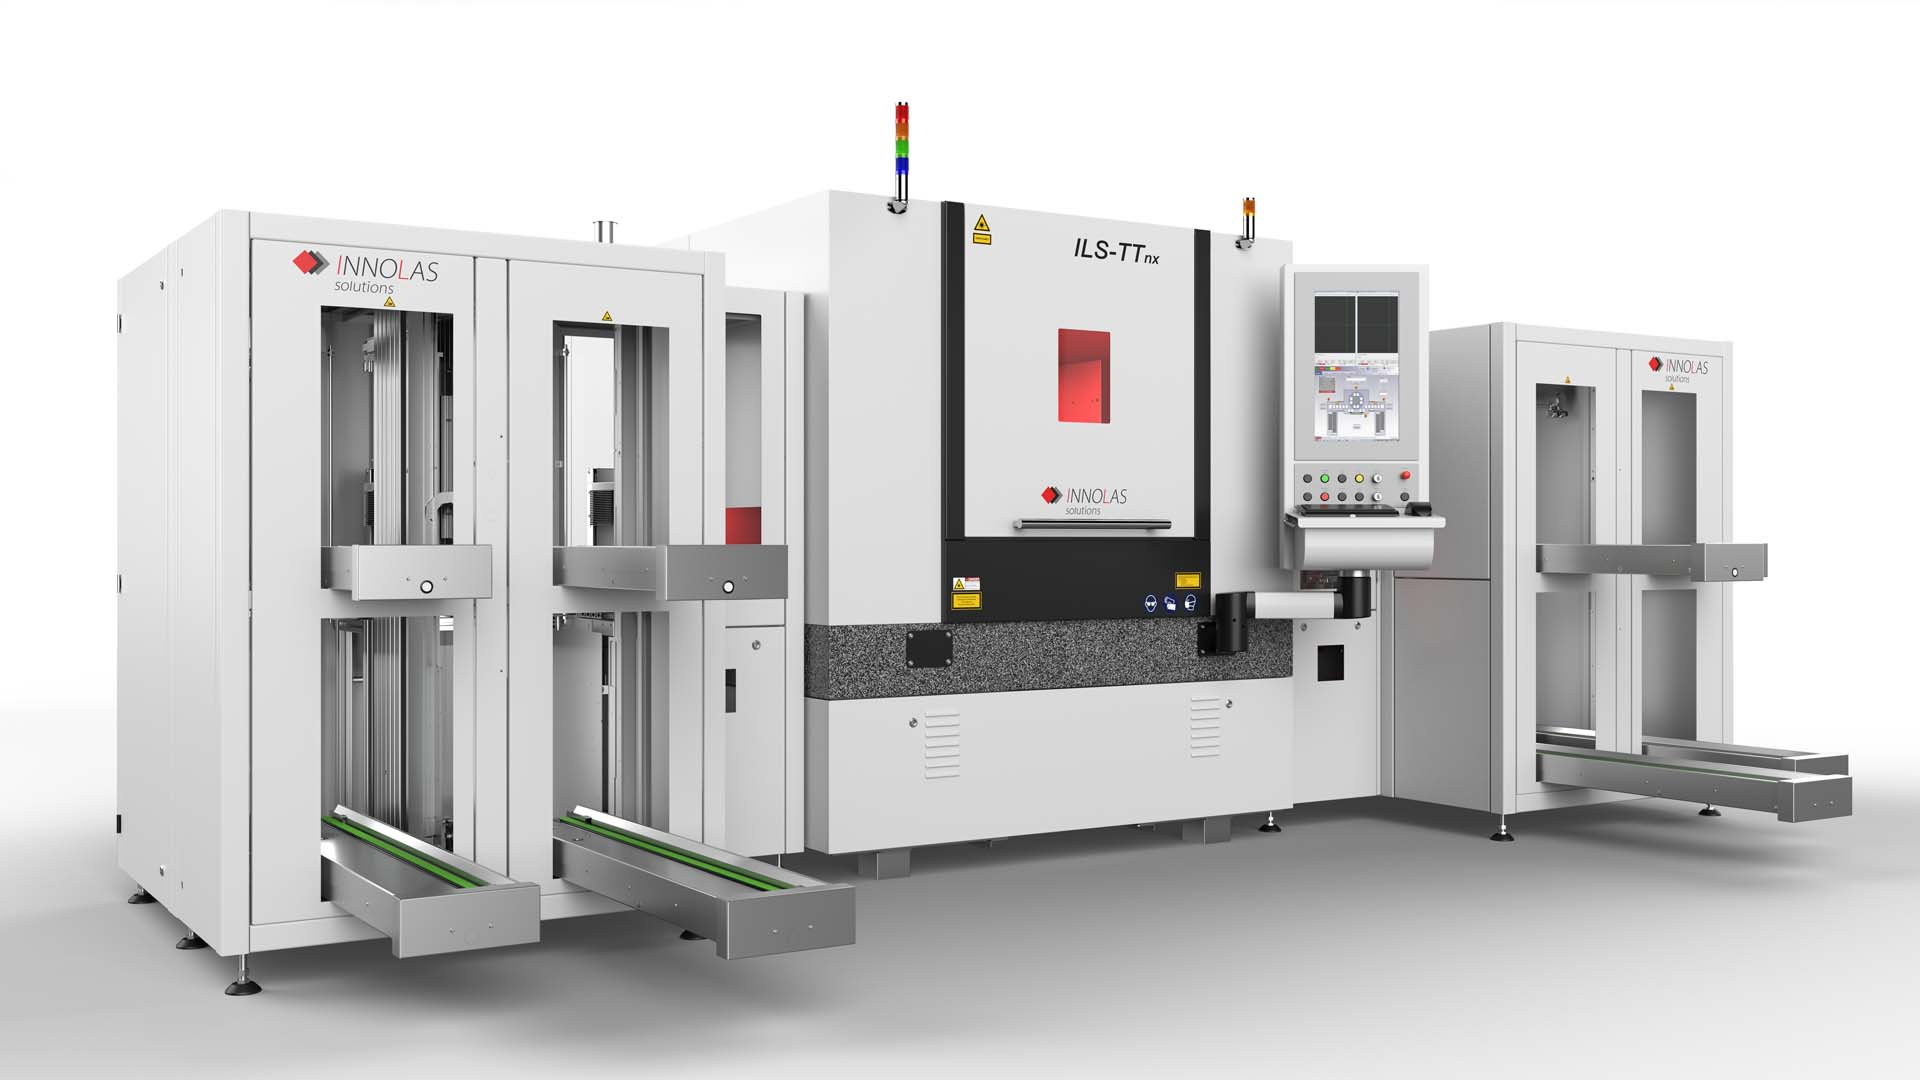 The enabling innovation for the ILST-Tnx comes out of InnoLas know how in laser optics, such as multi-beam splitting as well as multi-pattern scanning.